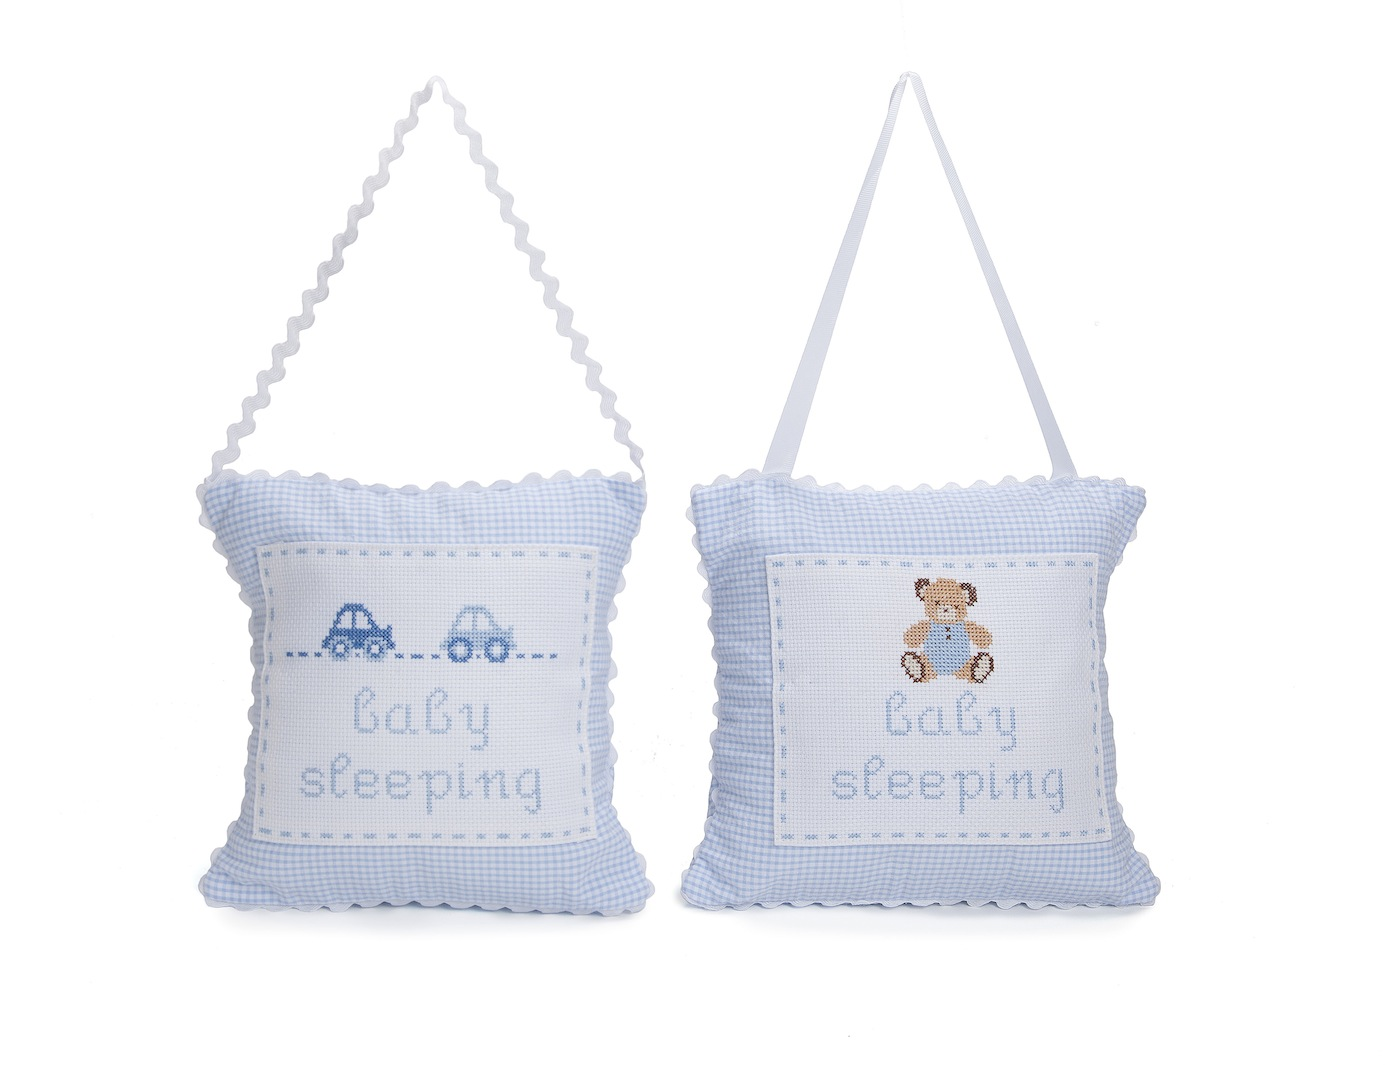 sc 1 st  BabyBox.com & embroidered personalized hanging door pillow - blue pezcame.com